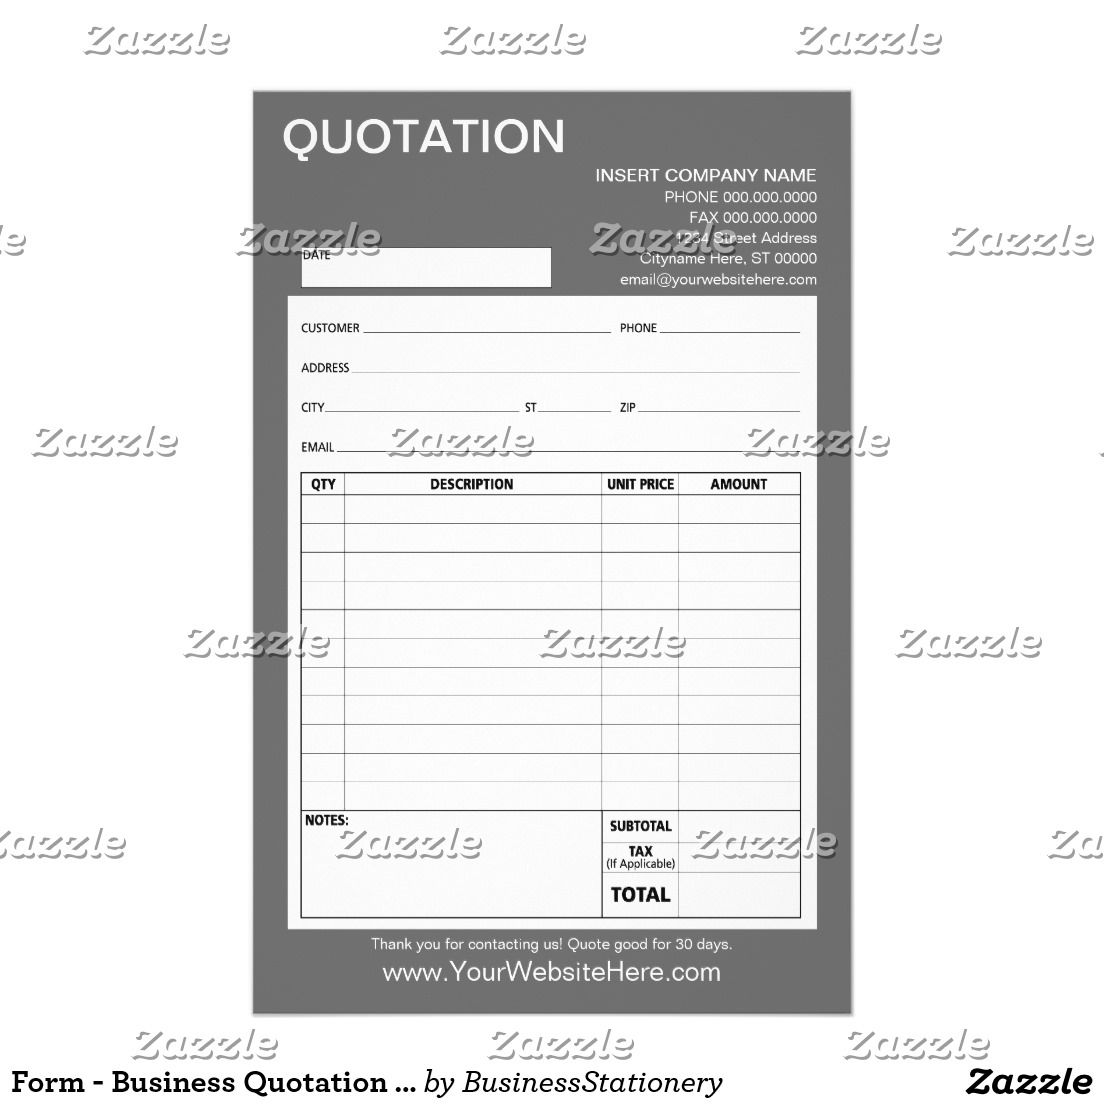 Form  Business Quotation Or Invoice  Deluxeforms  Great Office